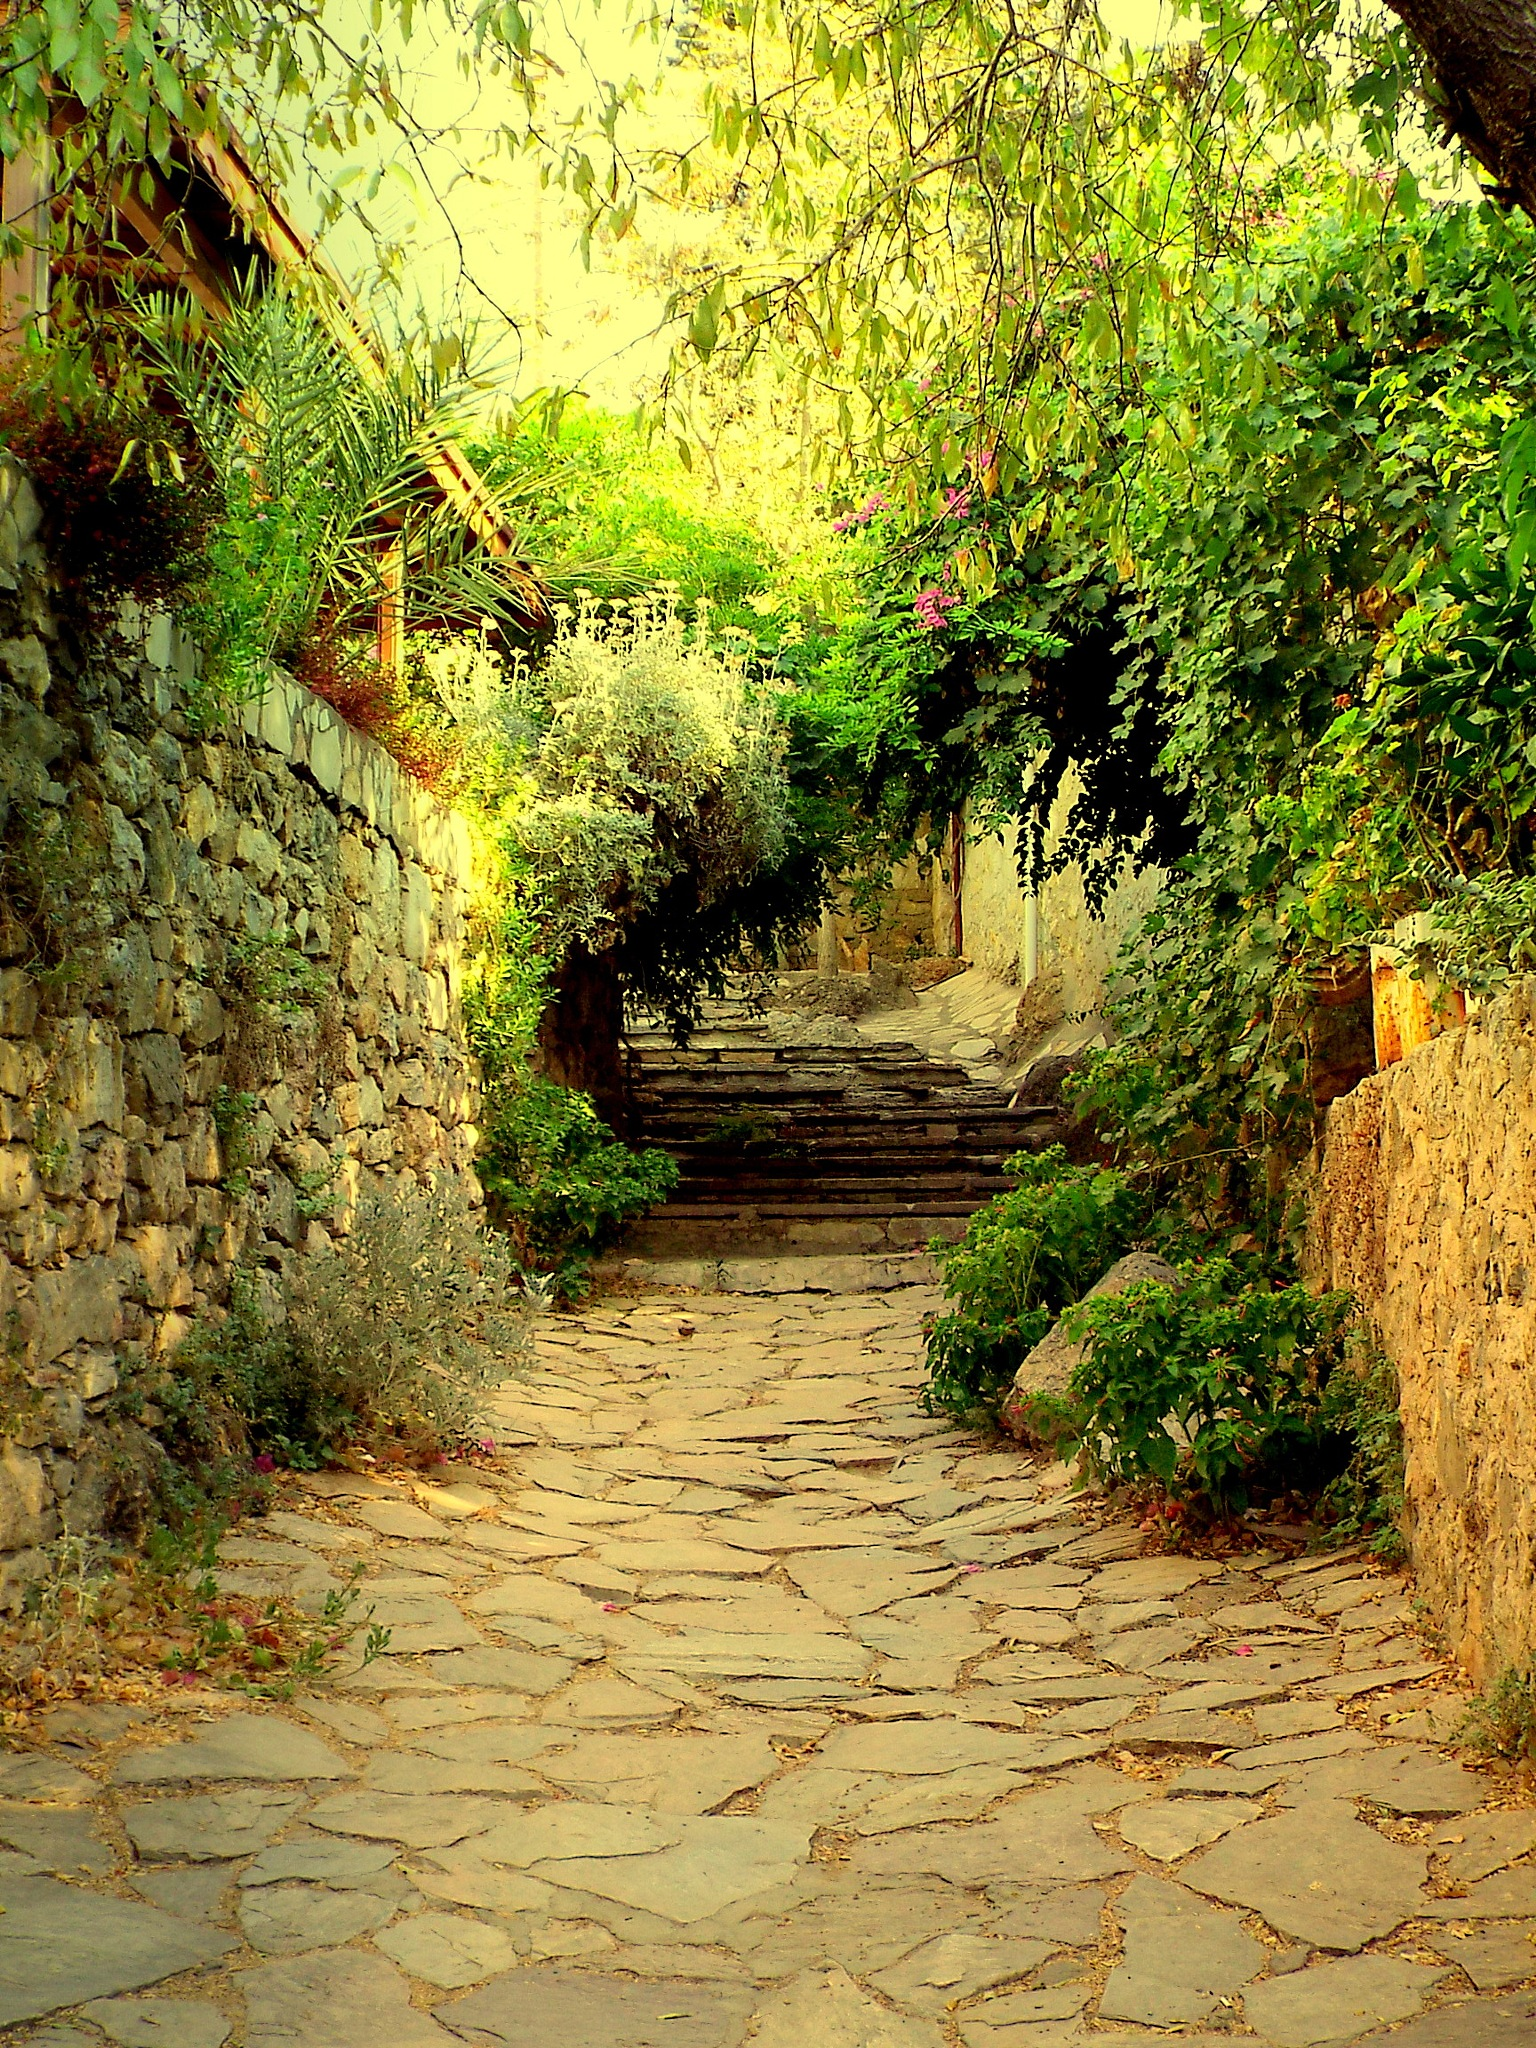 VIEW OF A BEAUTIFUL STREET, OLD DATCA by Akin Saner